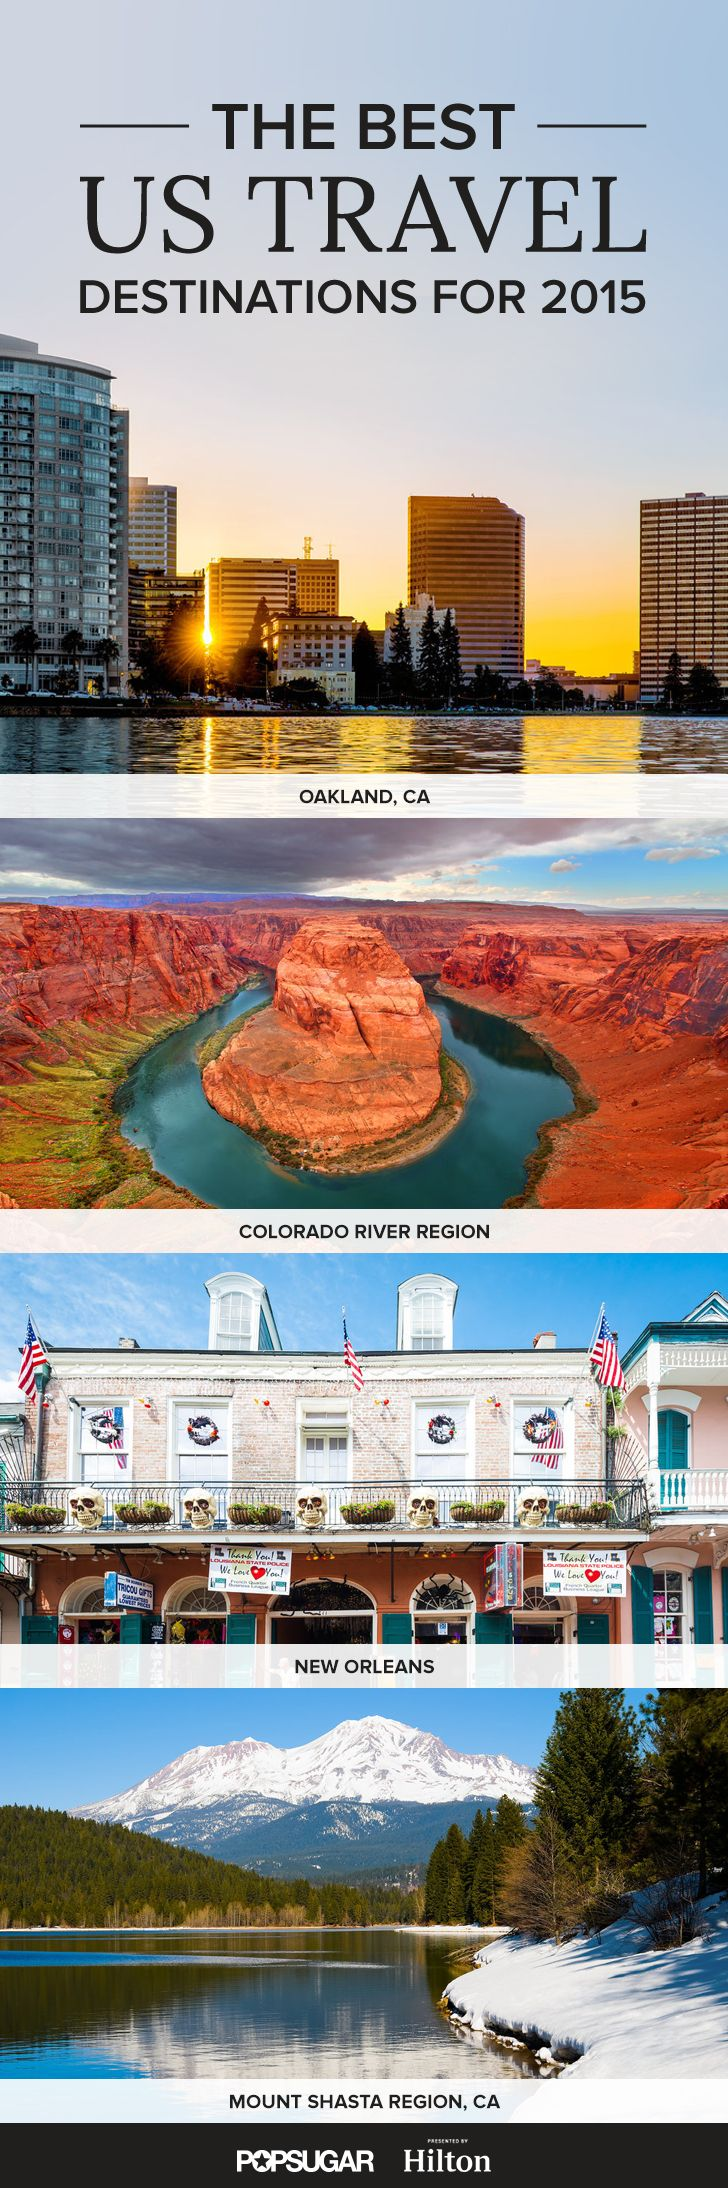 The 10 Places in the US You Absolutely Have to Visit in 2015 - except Queens. I'm from NY, there's nothing to really see in Queens. Try Manhattan!